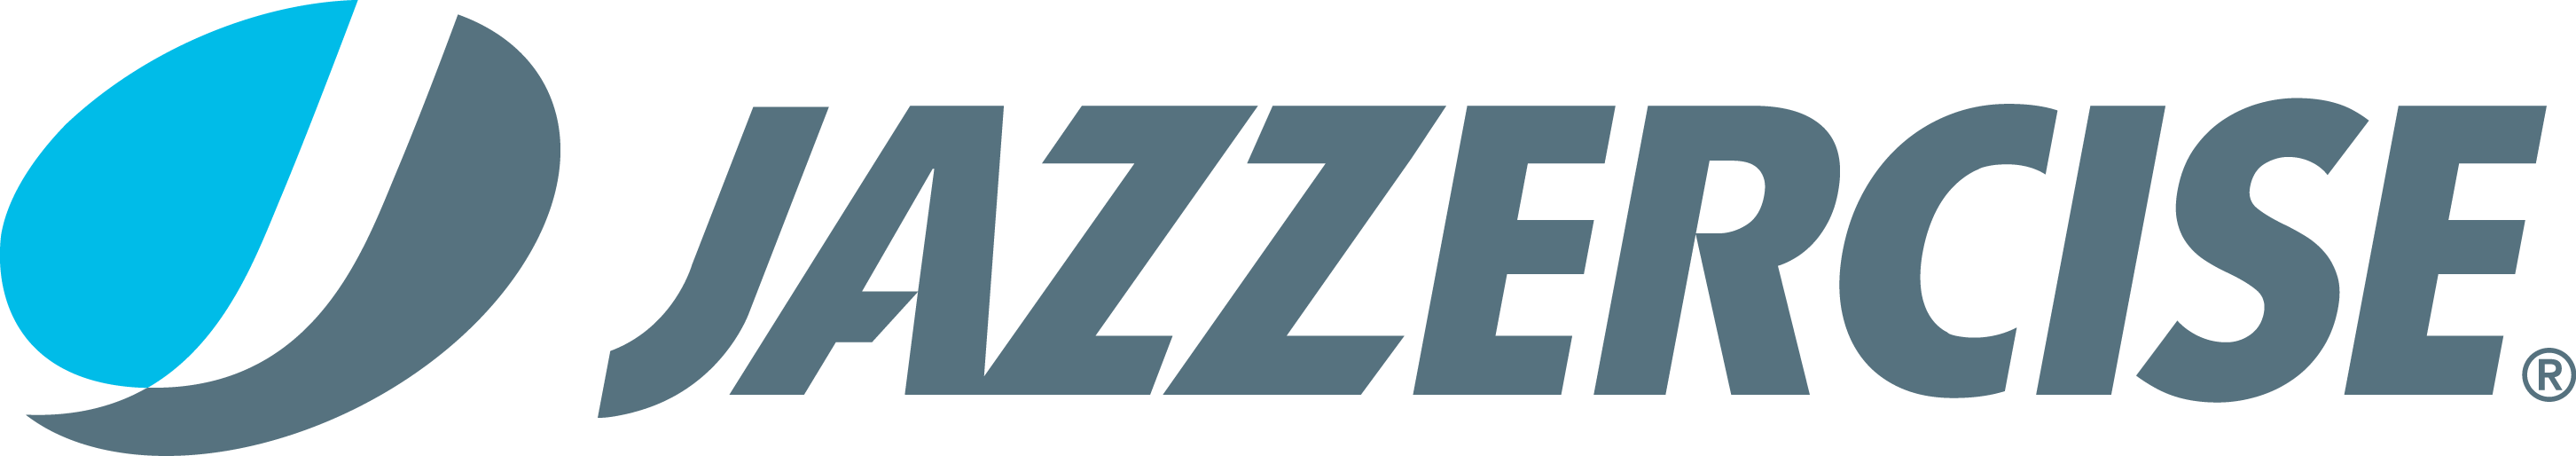 Sponsor for the MK5K, Jazzercise